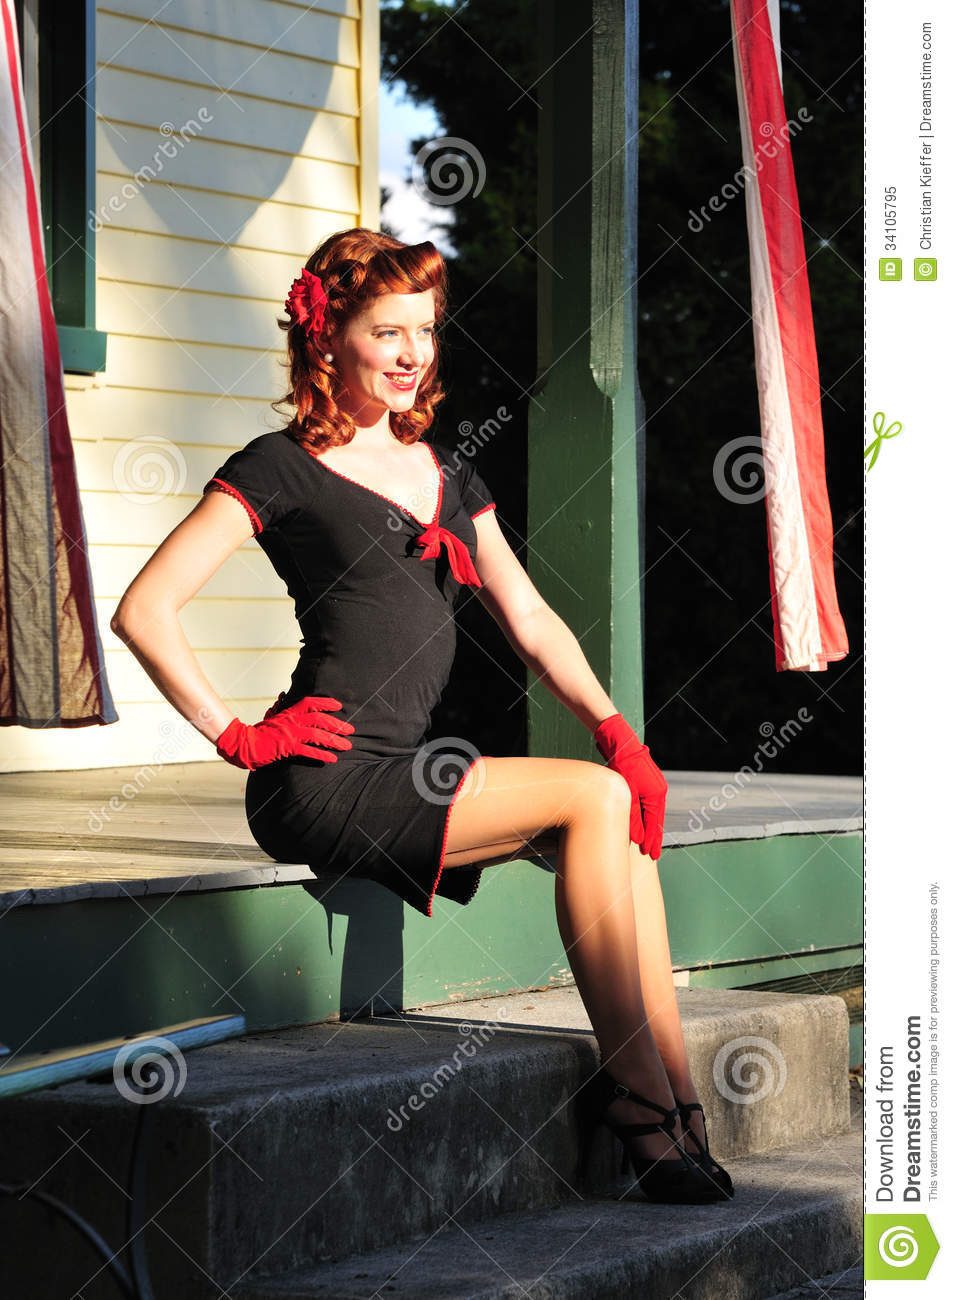 belle fille de pin up rousse image stock image du femme mode 34105795. Black Bedroom Furniture Sets. Home Design Ideas